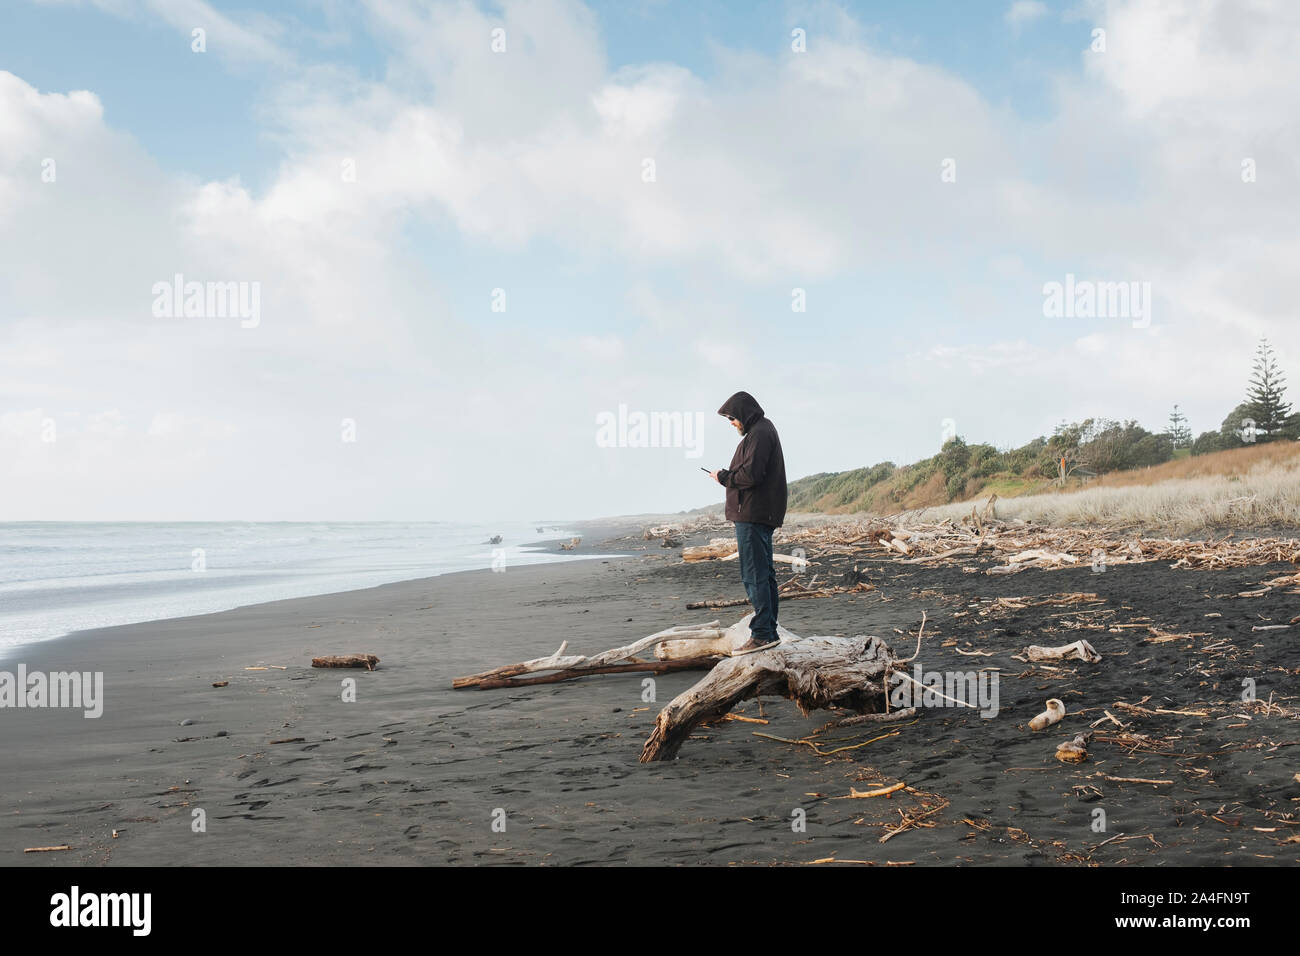 Man standing on driftwood looking at mobile phone at the beach Stock Photo